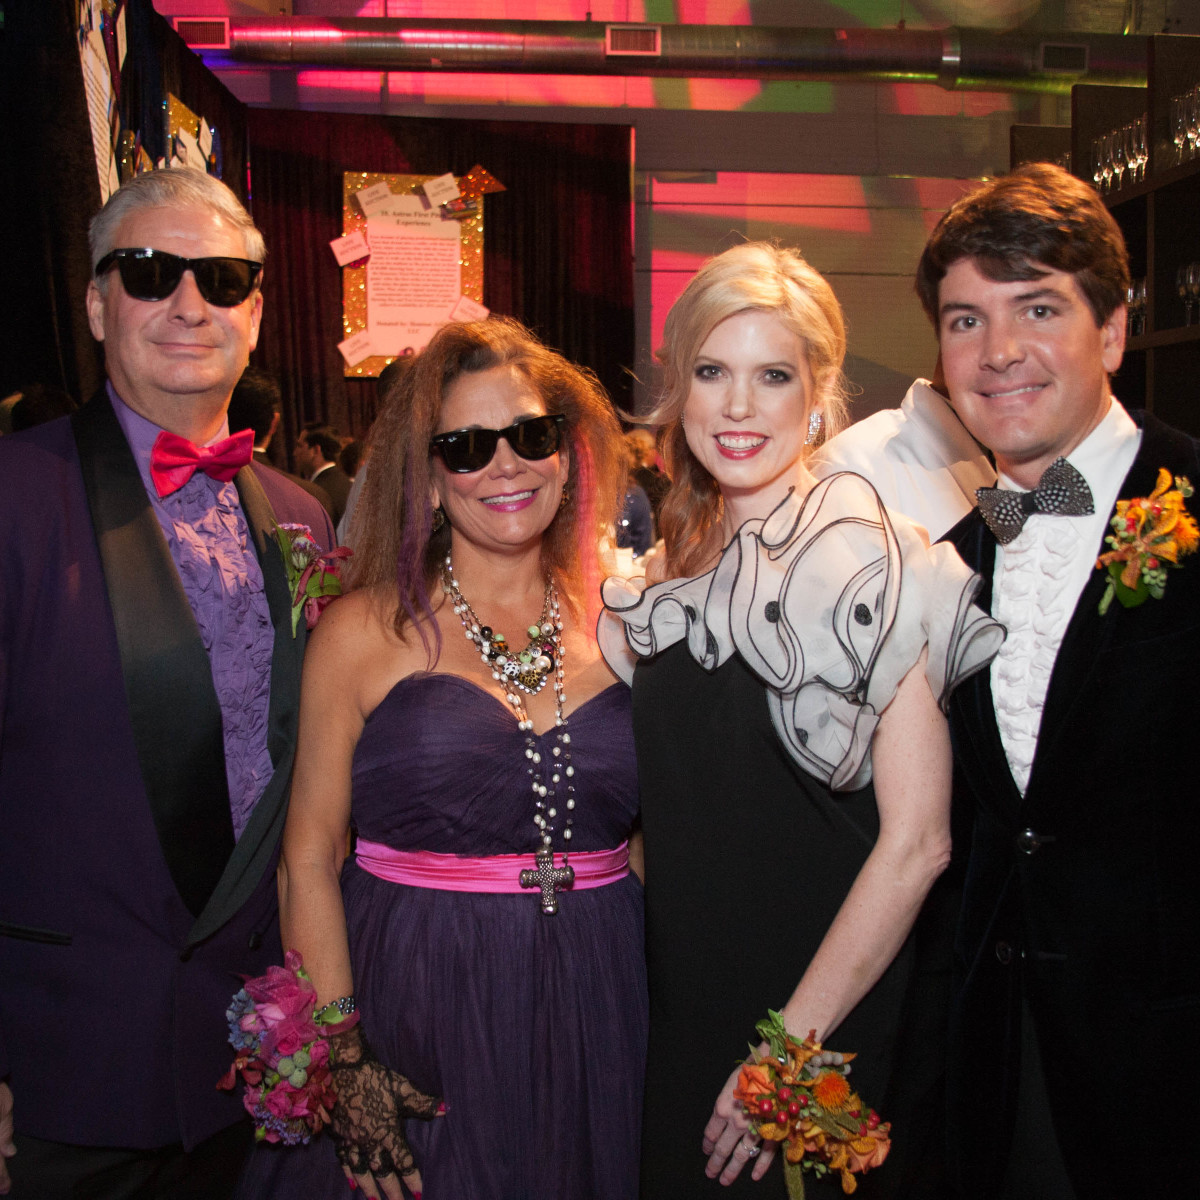 News, Shelby, Children's Museum gala, Oct. 2015 Carmen and Butch Mach, Courtney and Courtney Toomey,